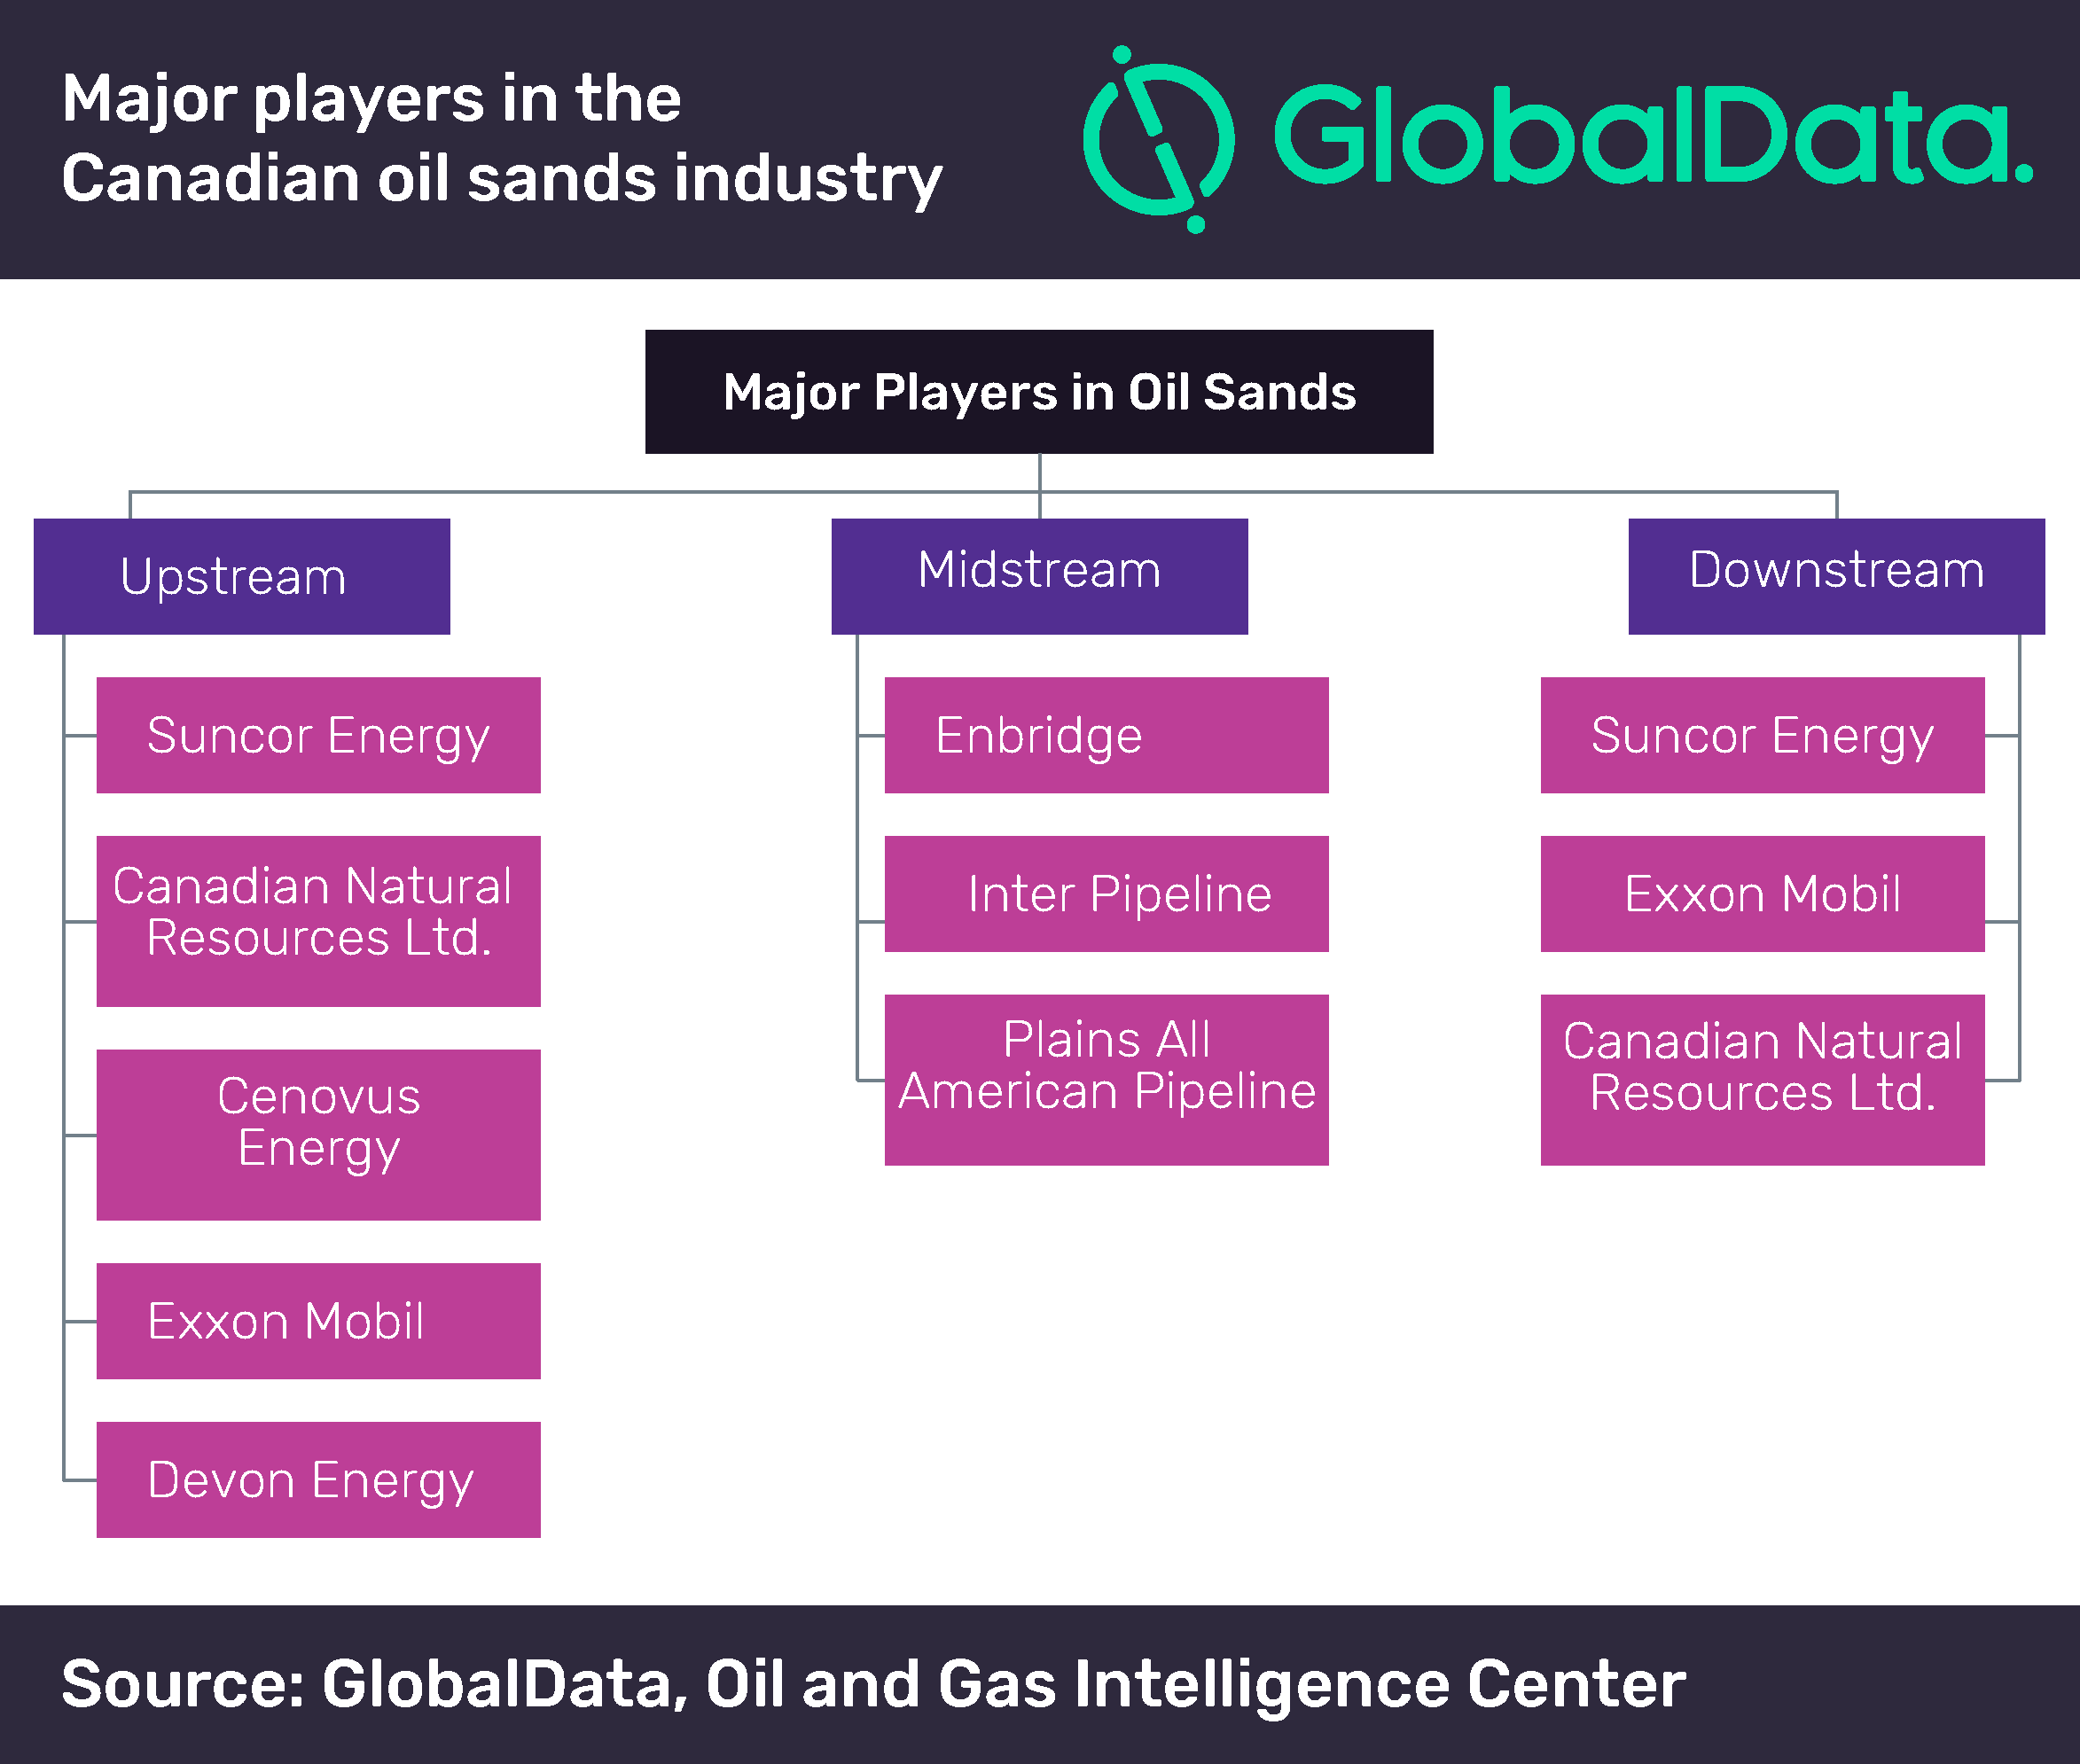 Latest Oil Sands Technologies Propel Canada as the World's Fourth Largest Producer of Crude Oil in 2018